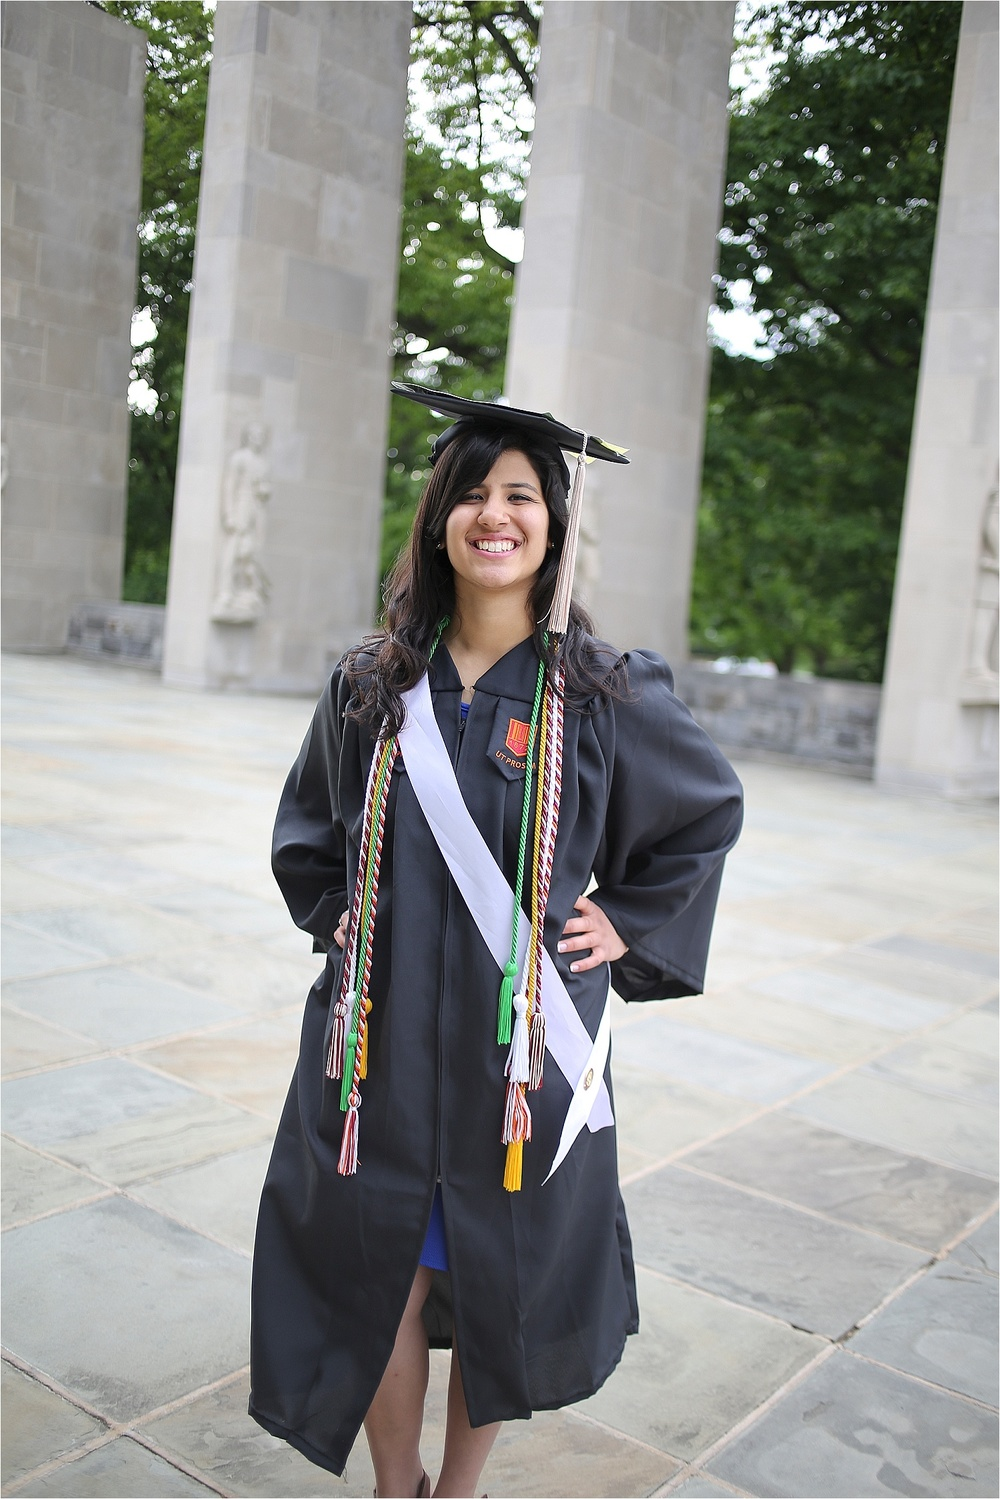 Blacksburg-Virginia-Tech-Senior-Portrait-Graduation-Photographer-_0007.jpg